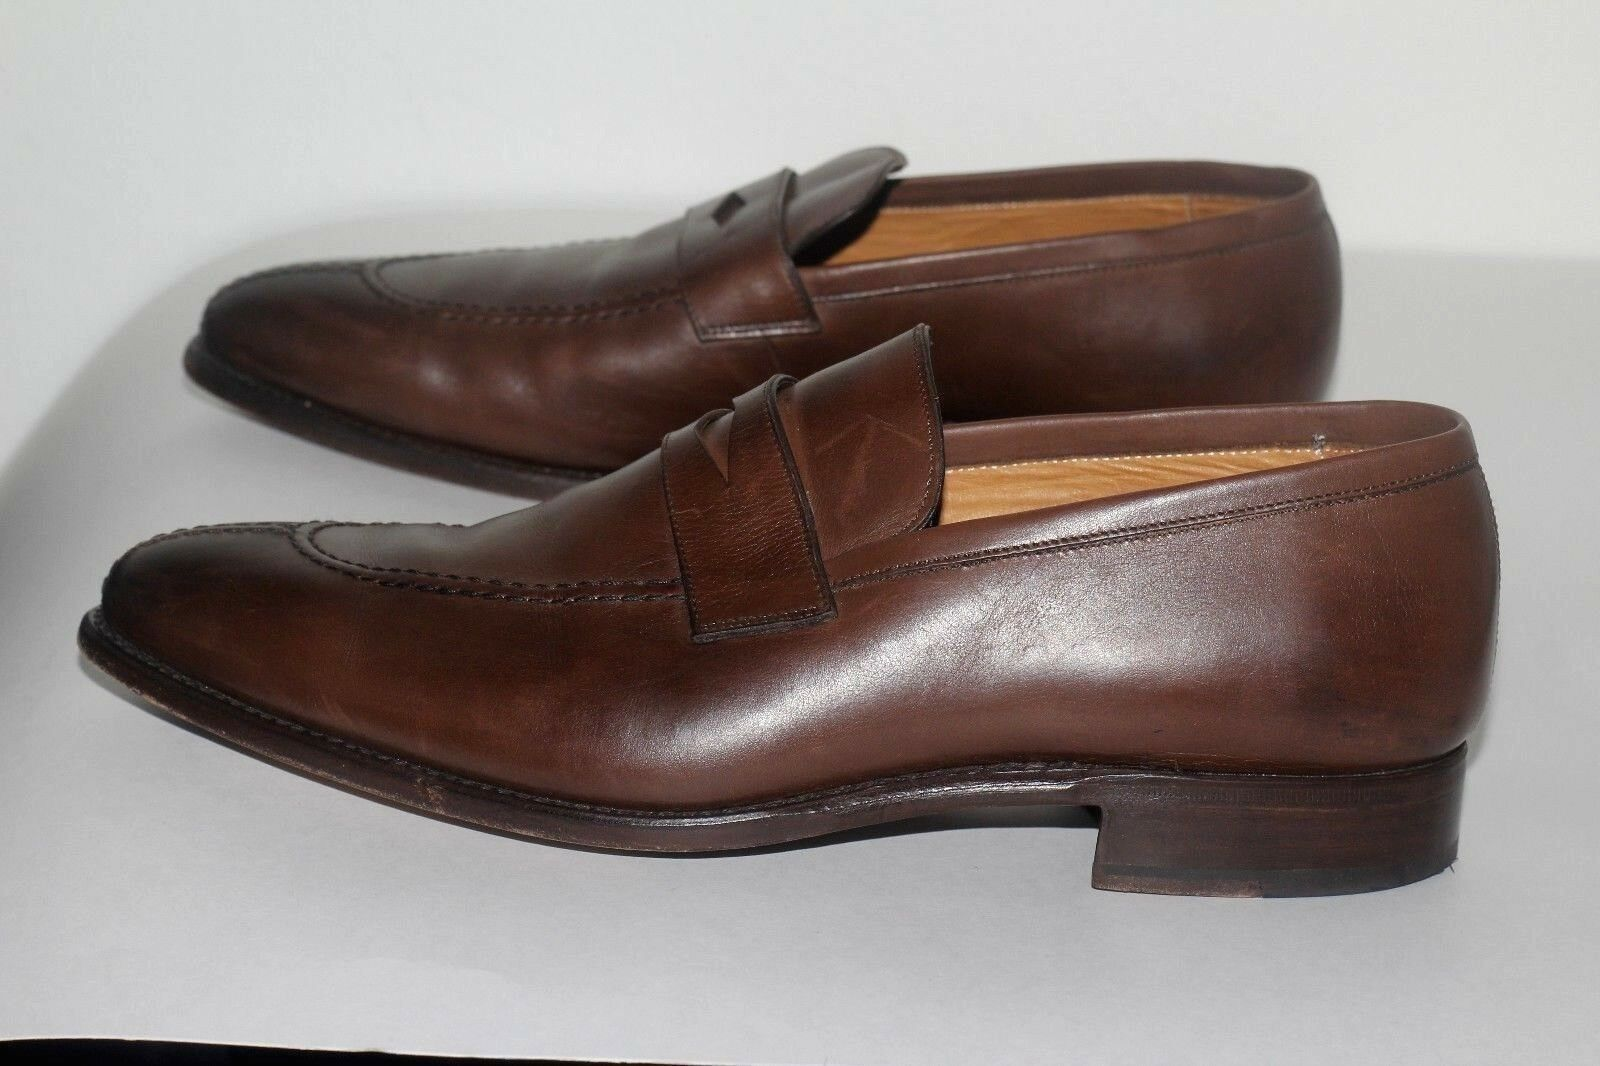 Fred Finlay Leather PENNY LOAFERS Men's shoes sz Uk 9.5 us 10.5 goodyear Welt